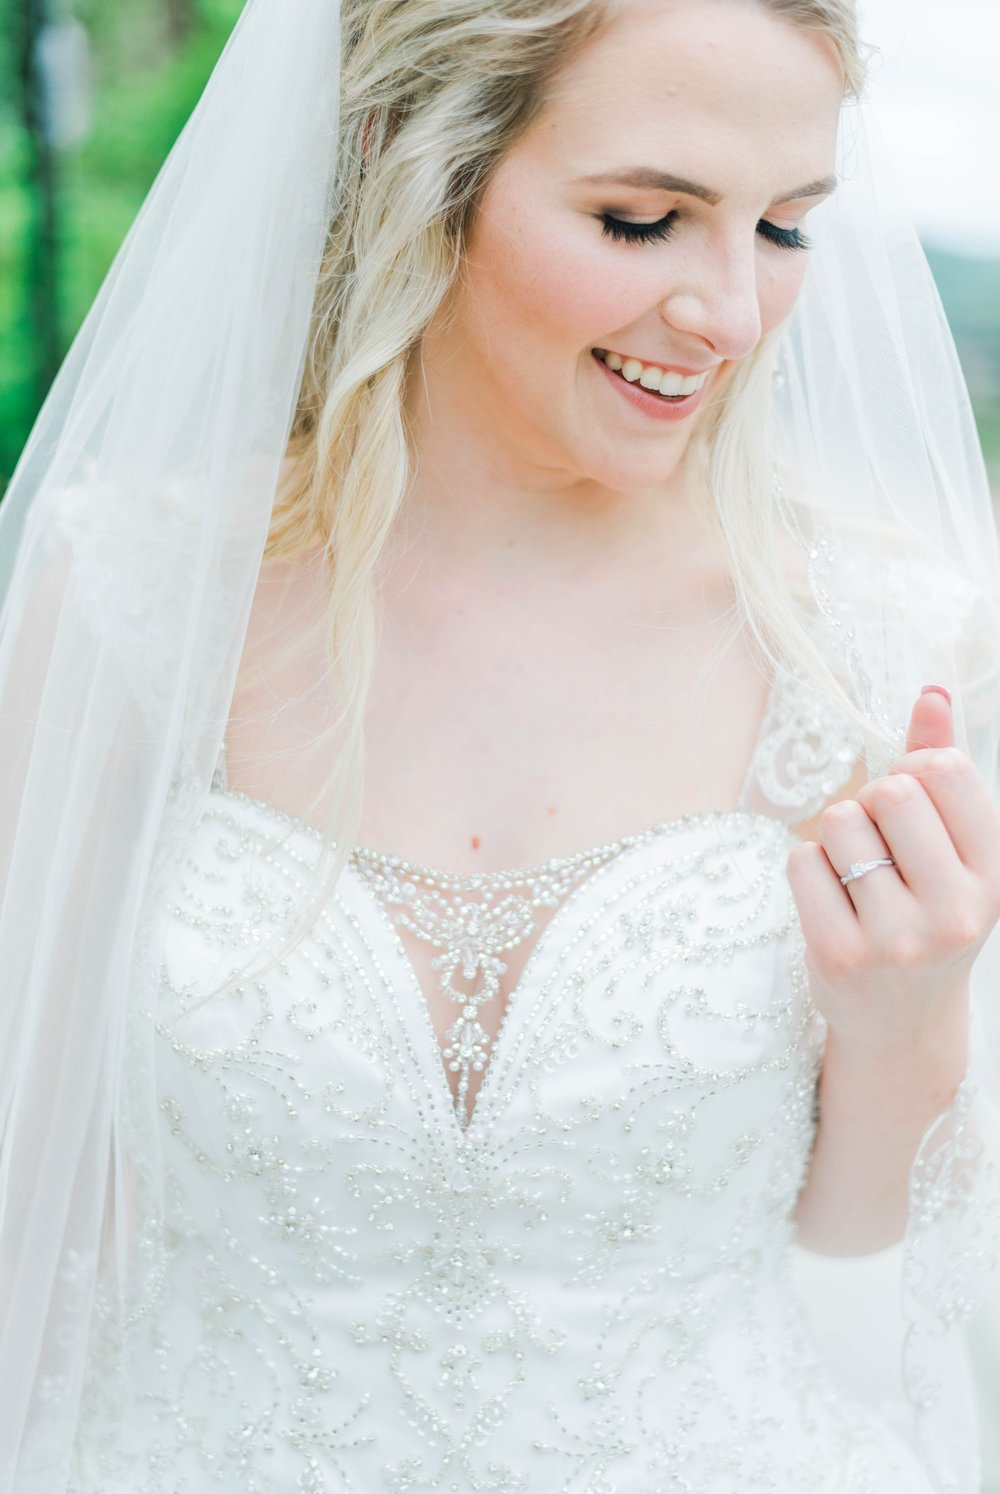 LynchburgVirginia_Virginiaweddingphotographer_michaelkim 30.jpg